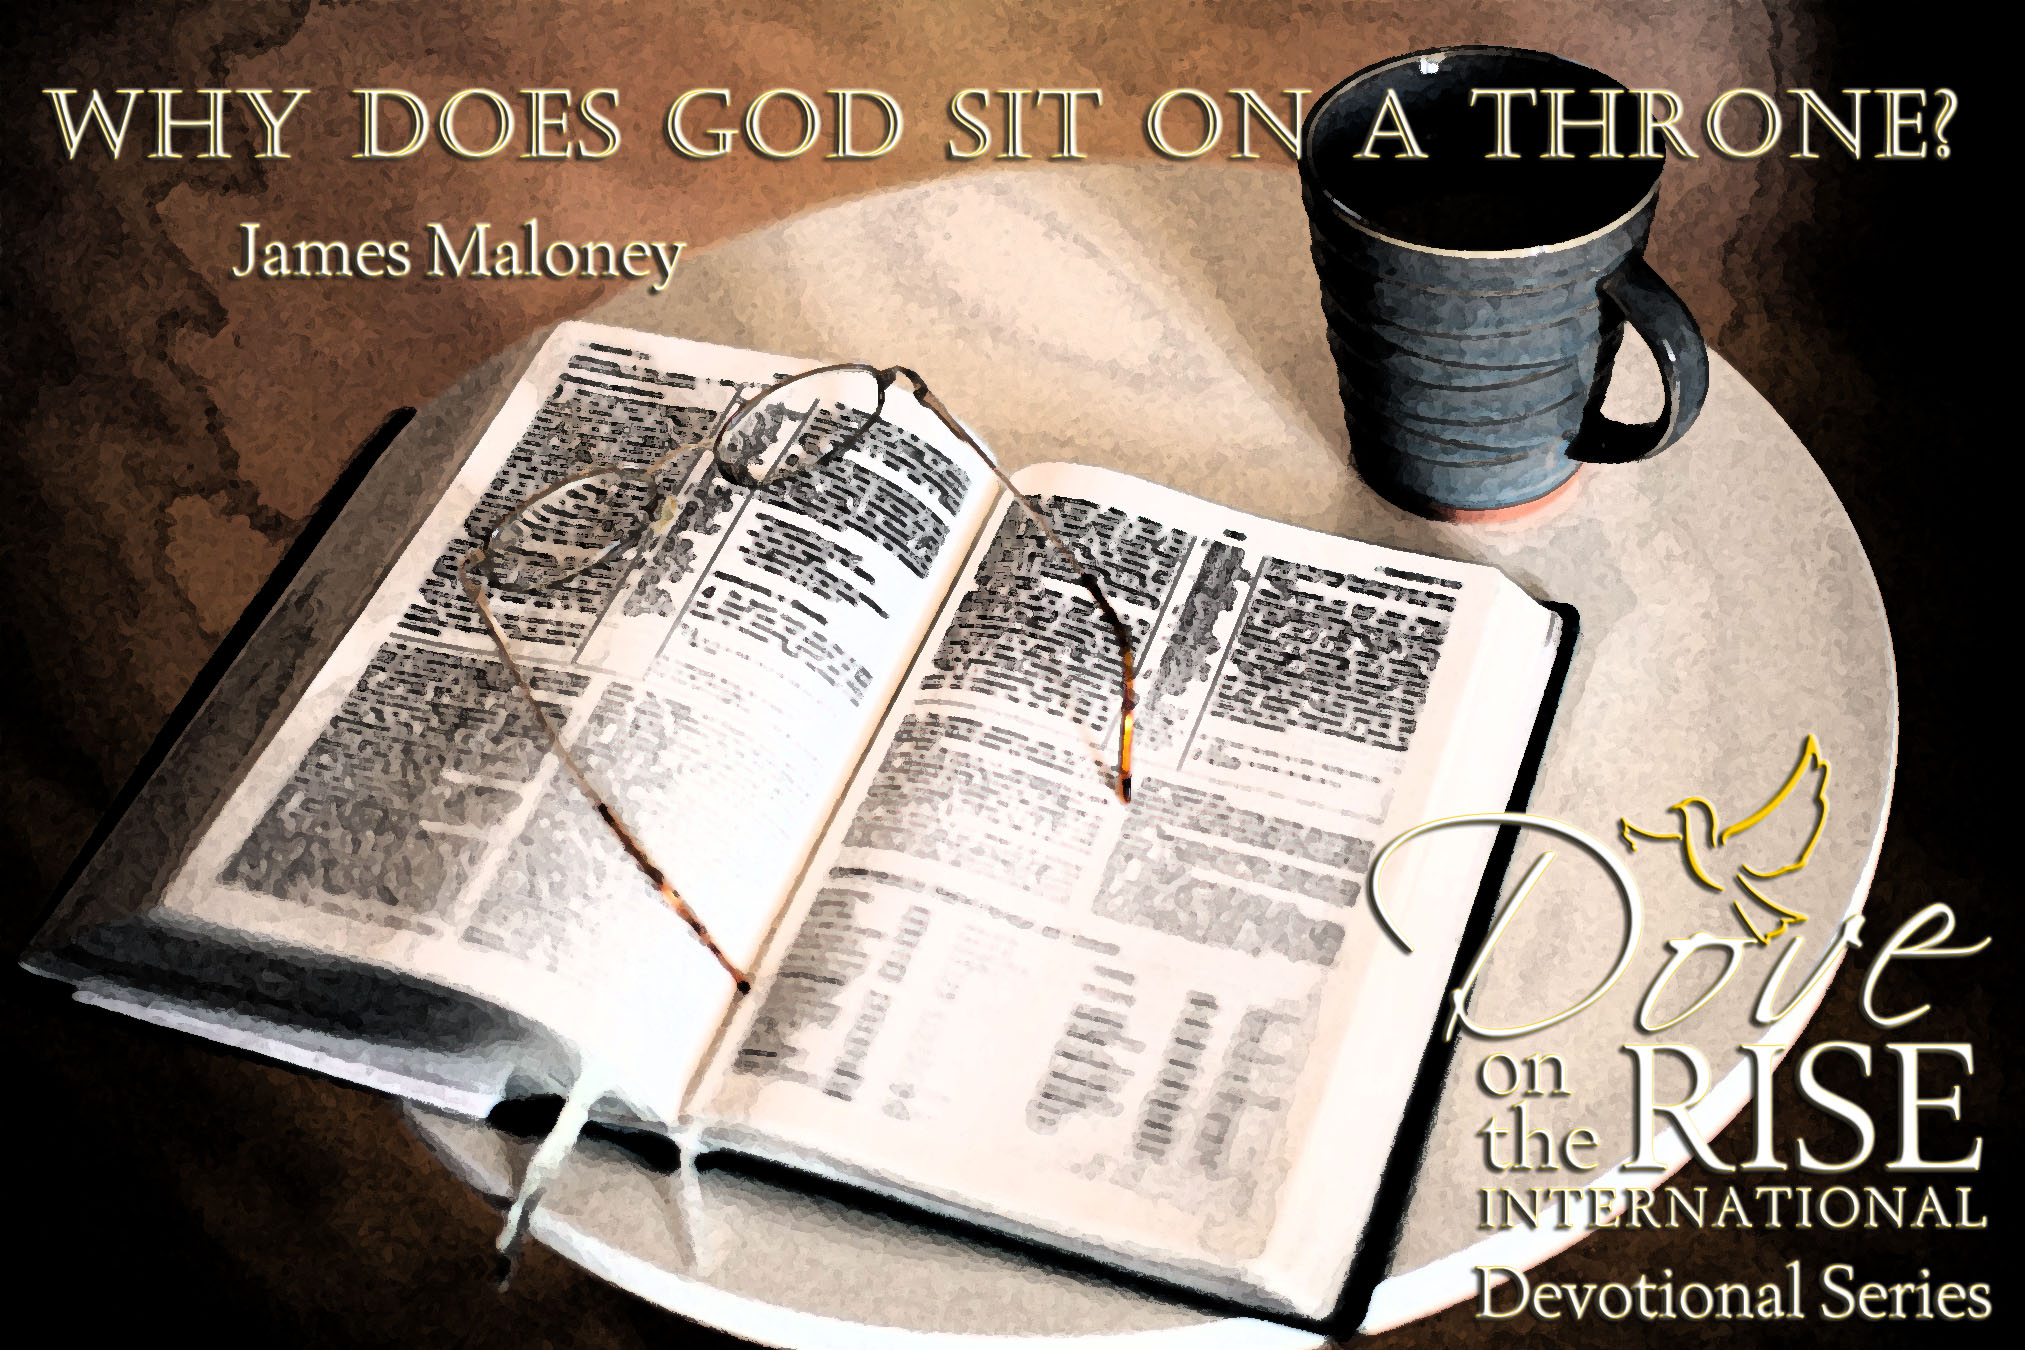 Why Does God Sit on a Throne? (DotR Devotional Series)